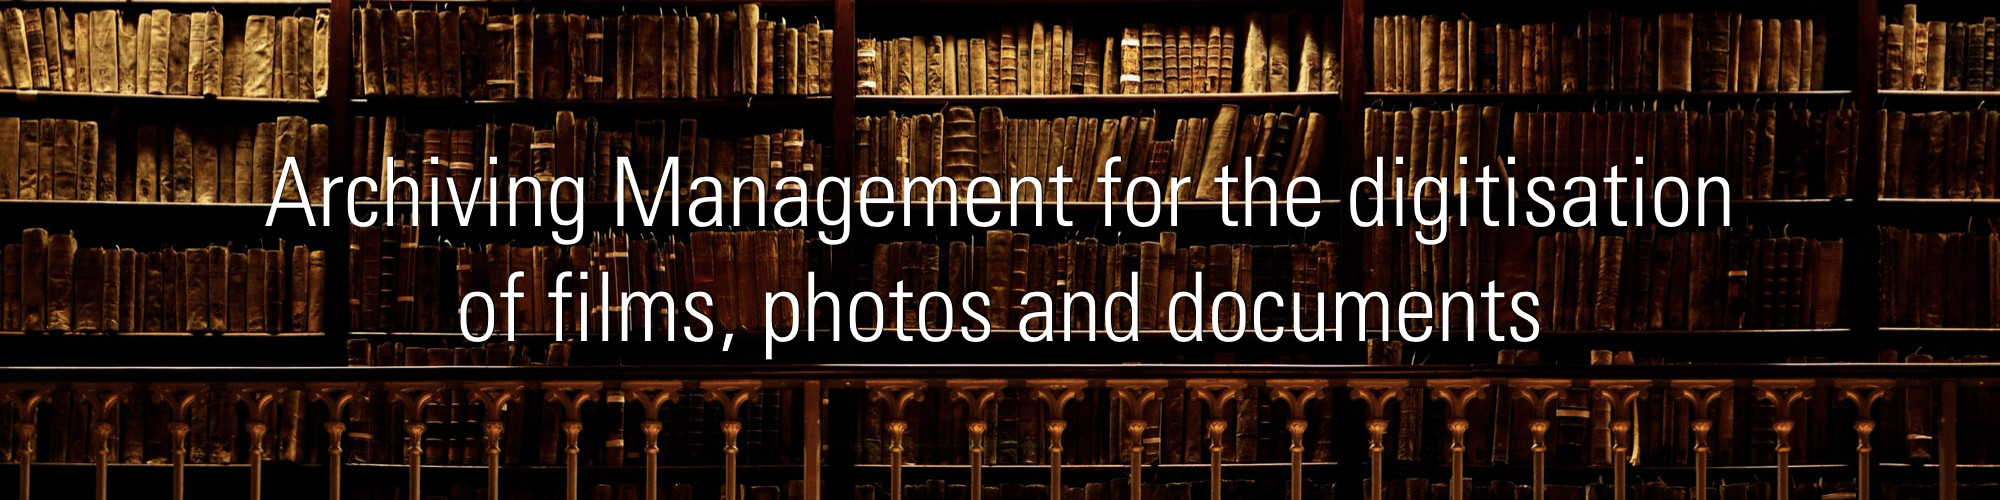 Archiving Management for digitization of films, photos and documents